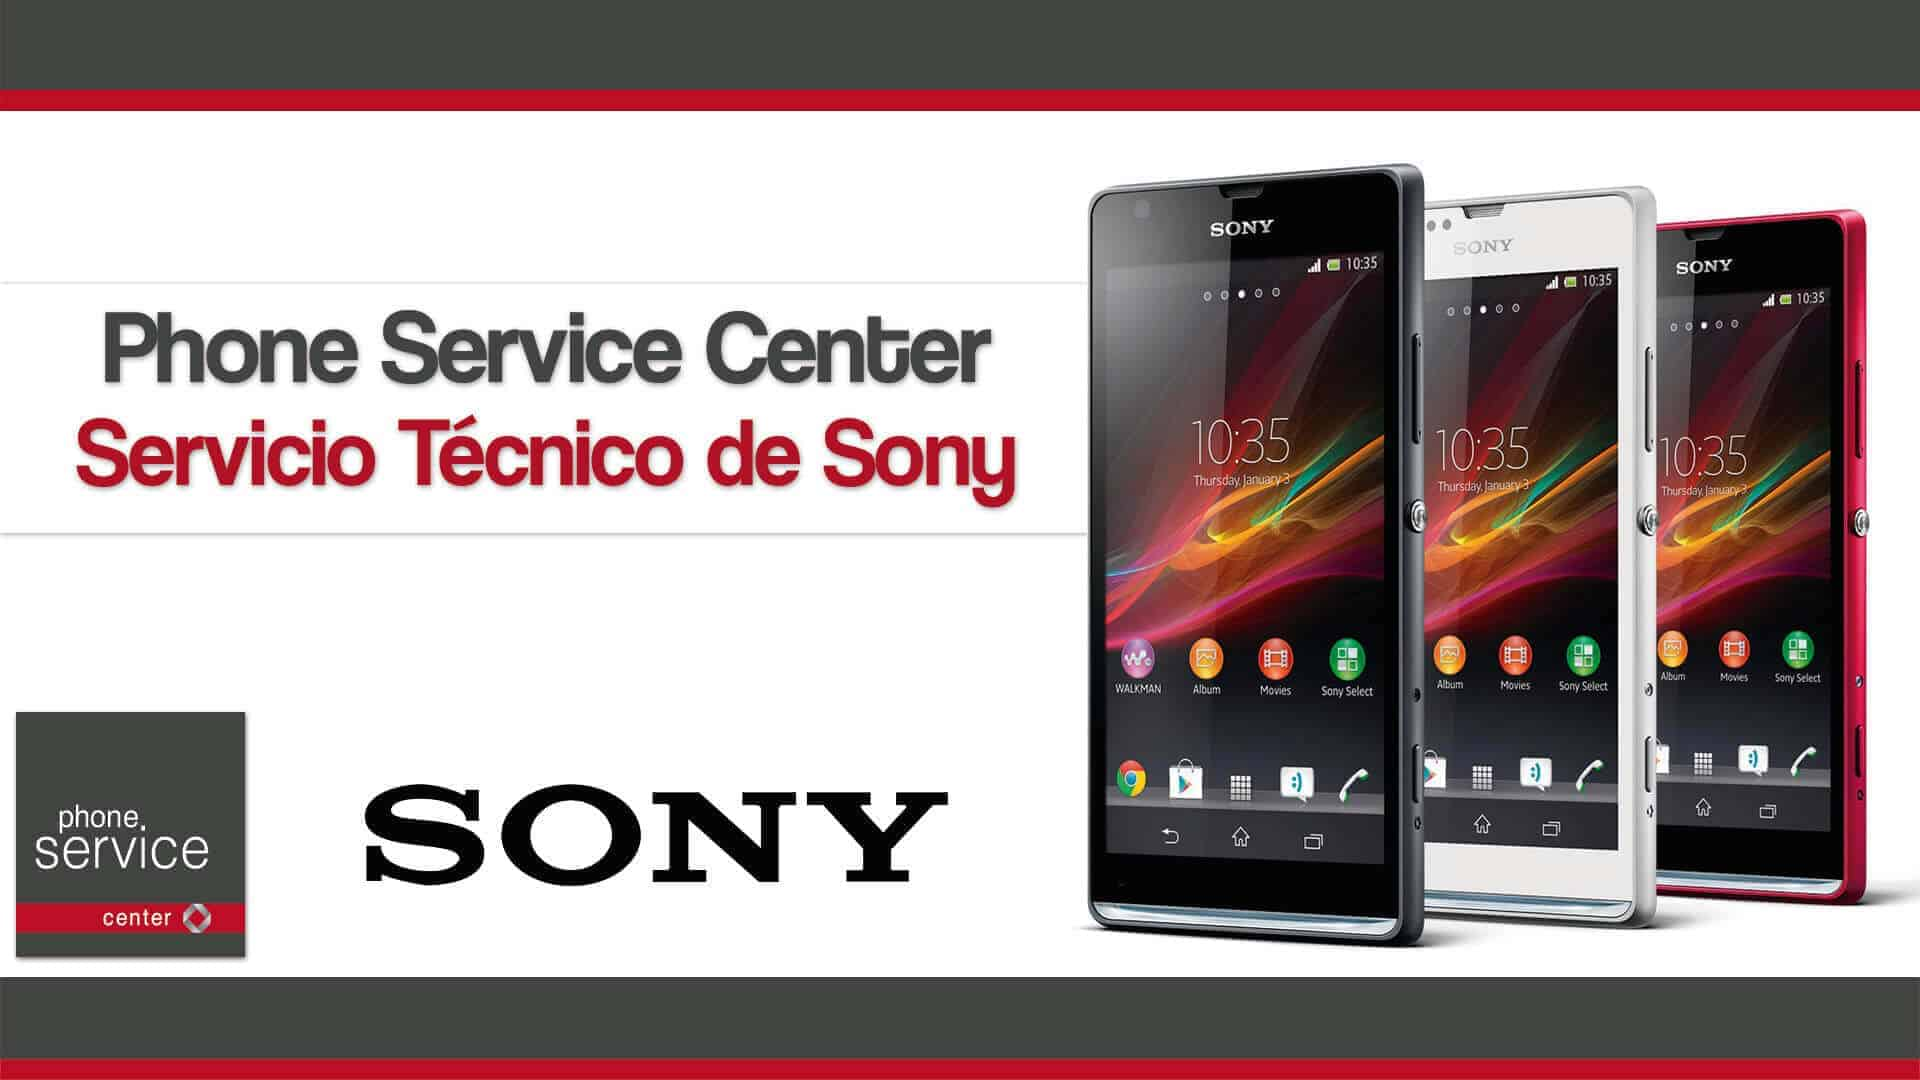 Phone Service Center Servicio Tecnico de Sony